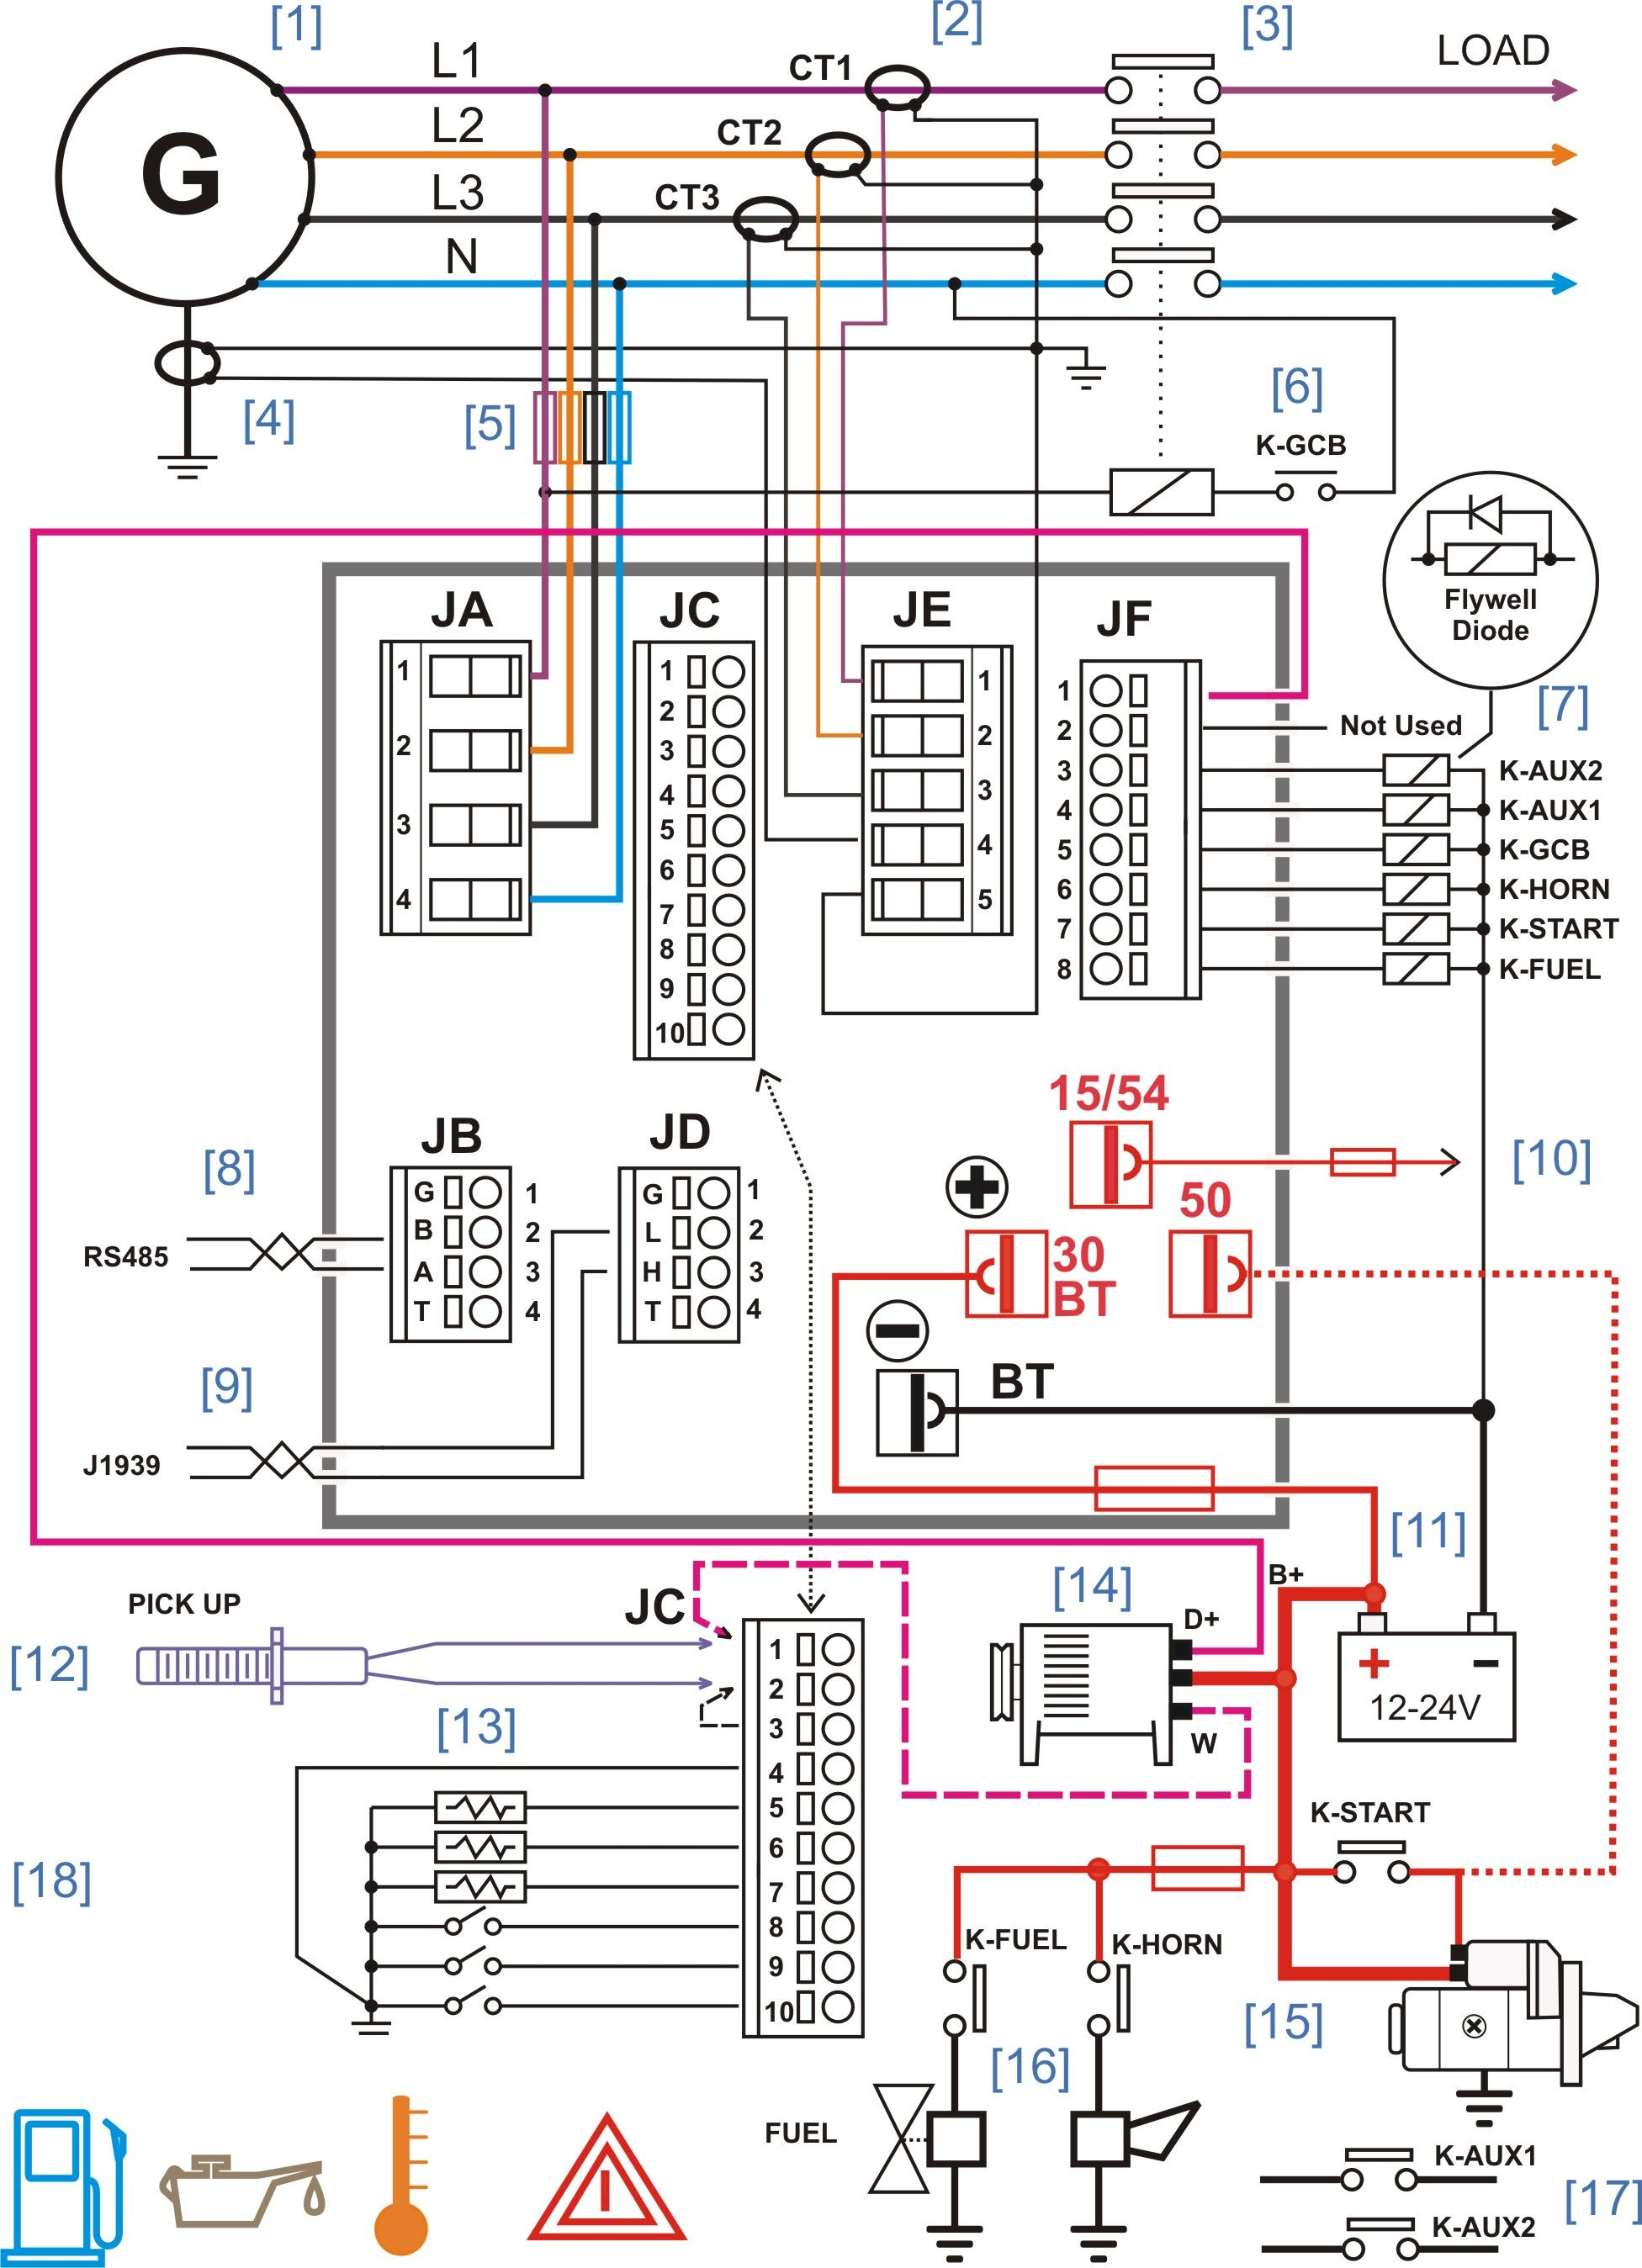 control wiring diagram cruise control wiring diagram chevrolet